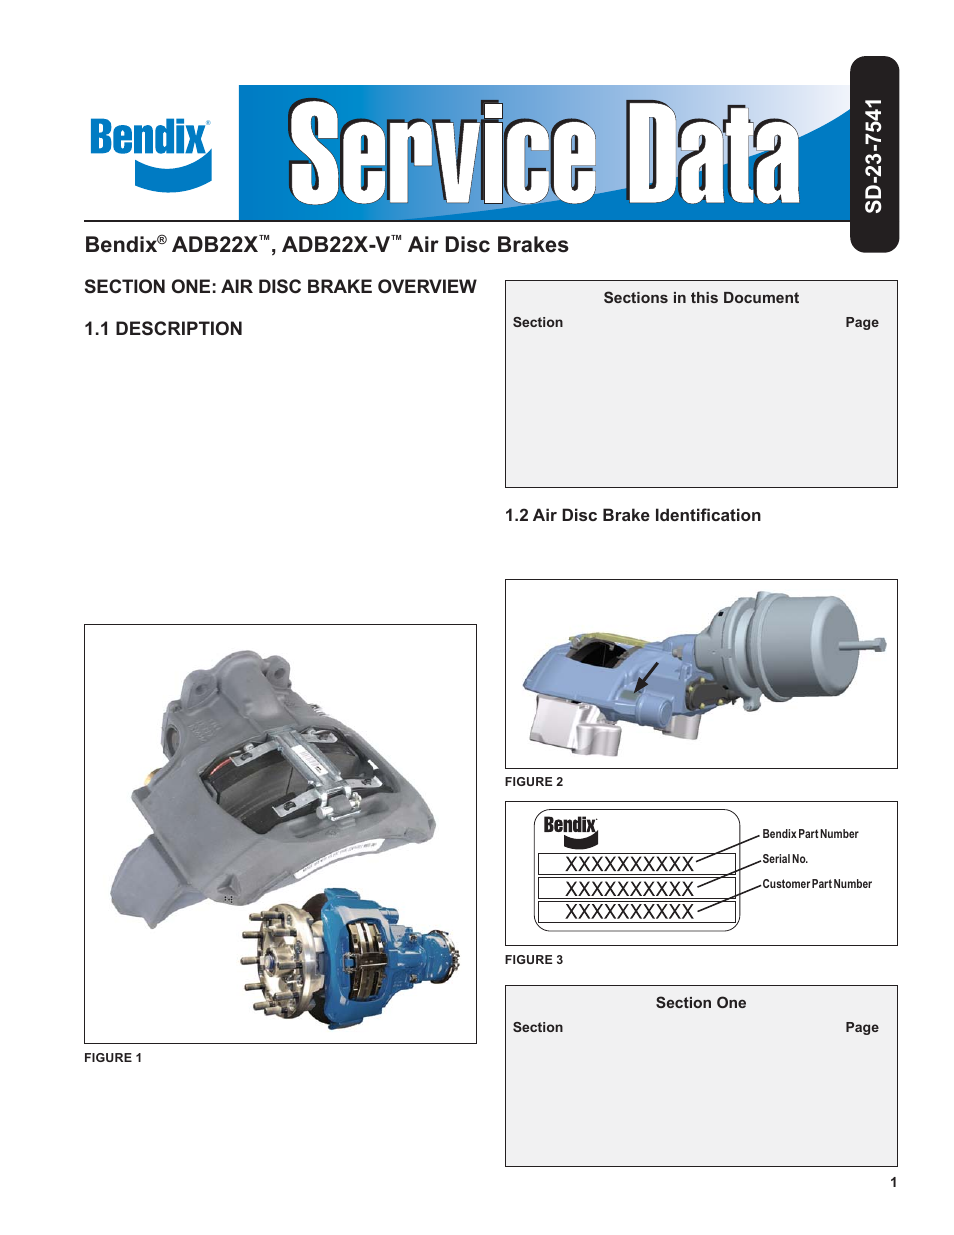 Bendix commercial vehicle systems adb v air disc brakes